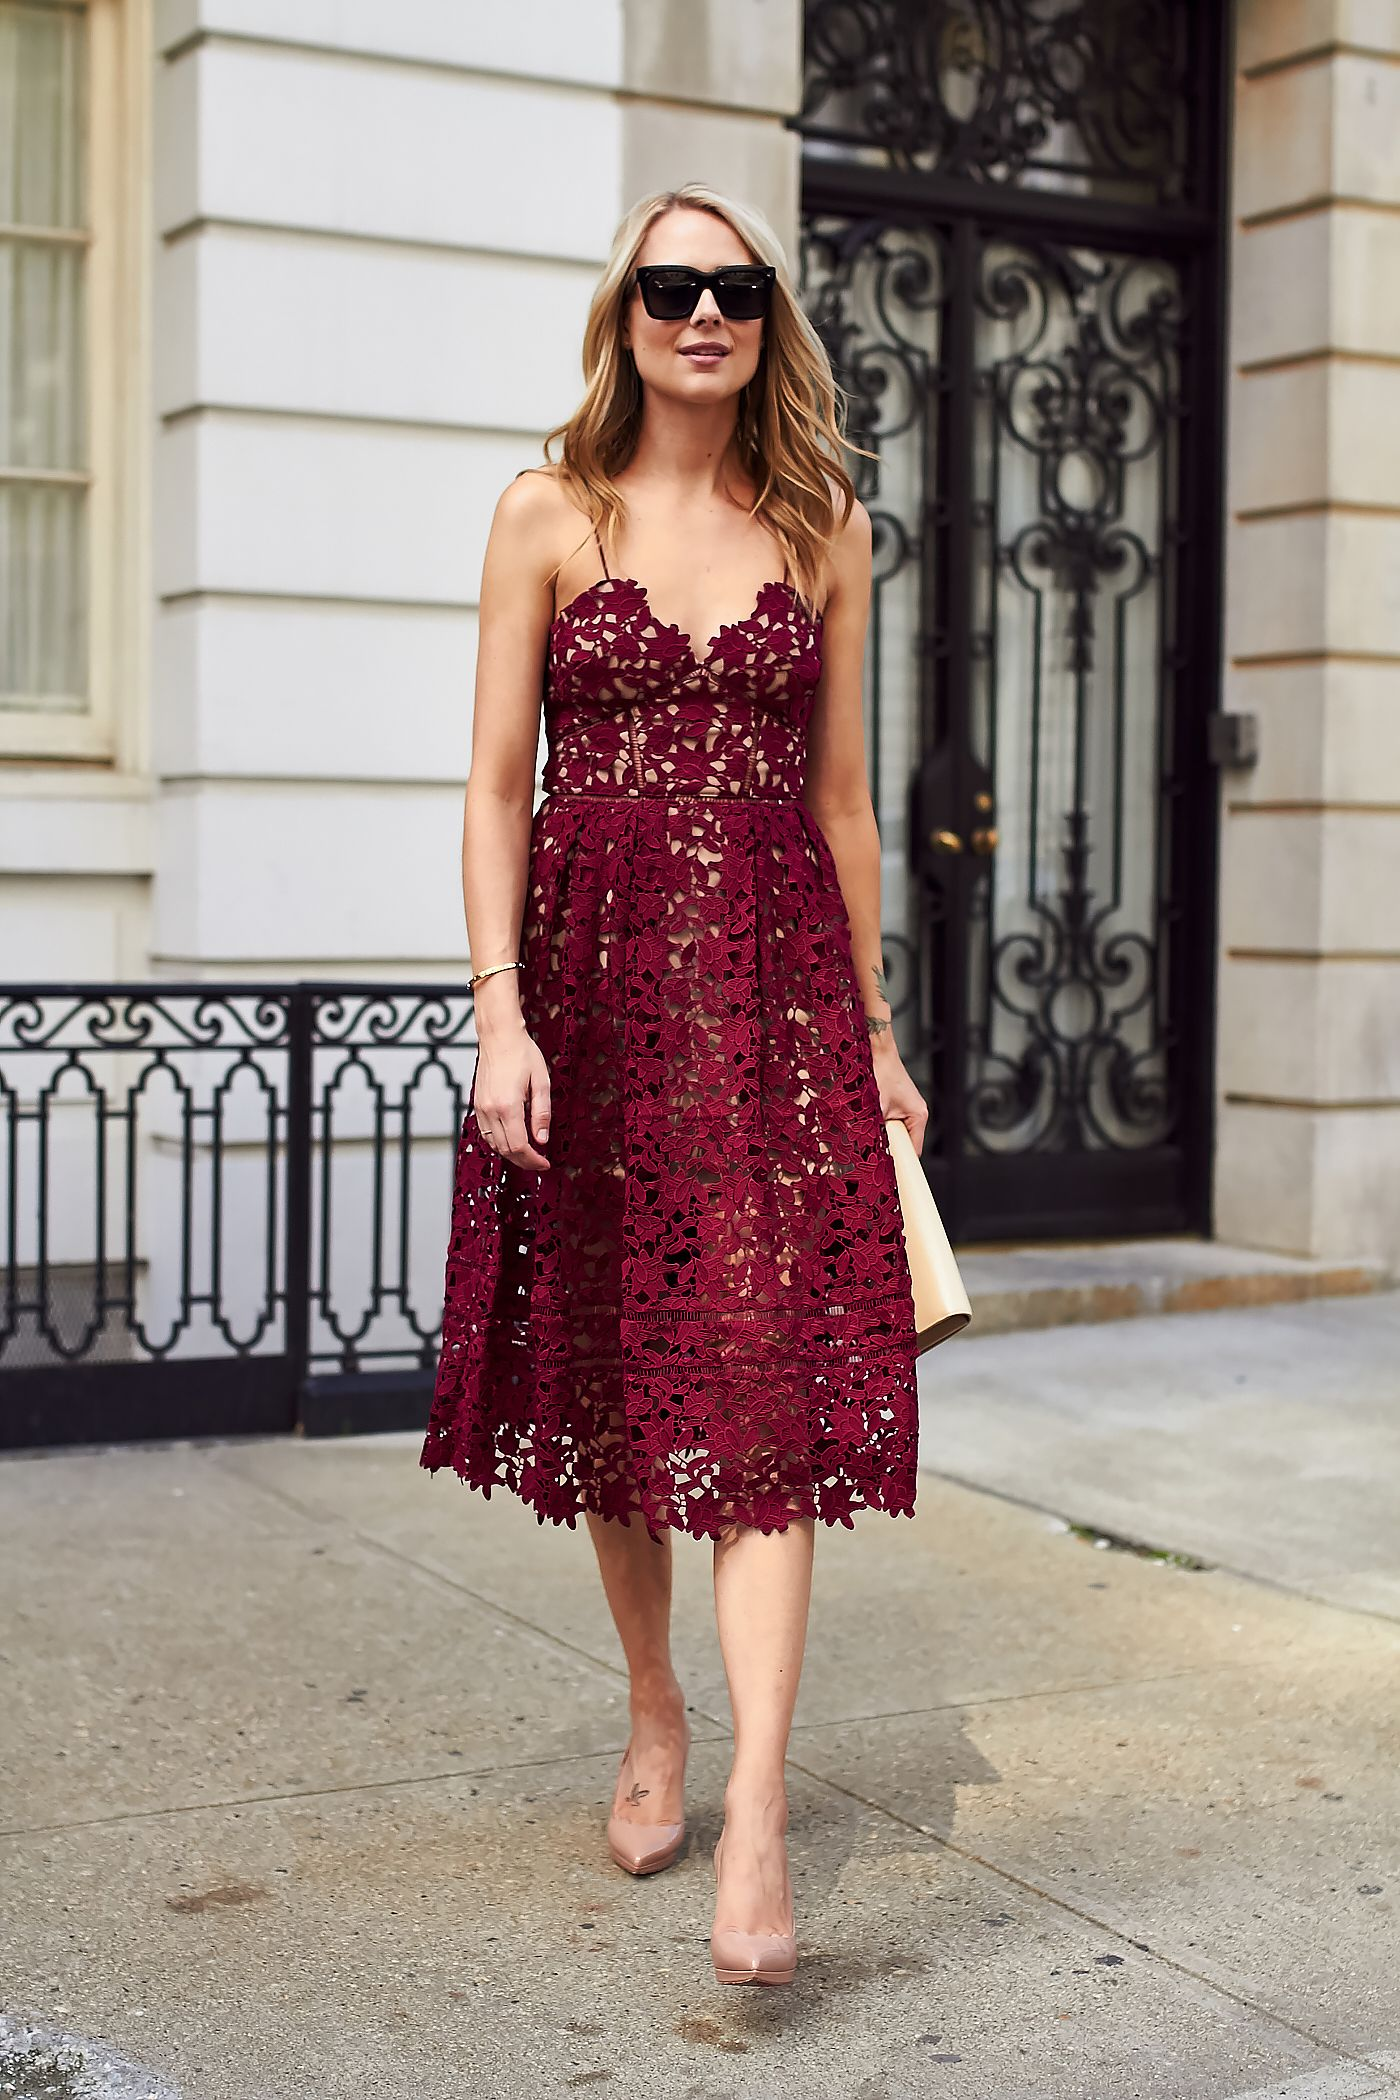 This Wine Hued Lace Midi Dress Is Stunning And Would Be The Perfect Holiday Party Dress Love This Feminine Style Dresses Fashion Fashion Jackson [ 2100 x 1400 Pixel ]